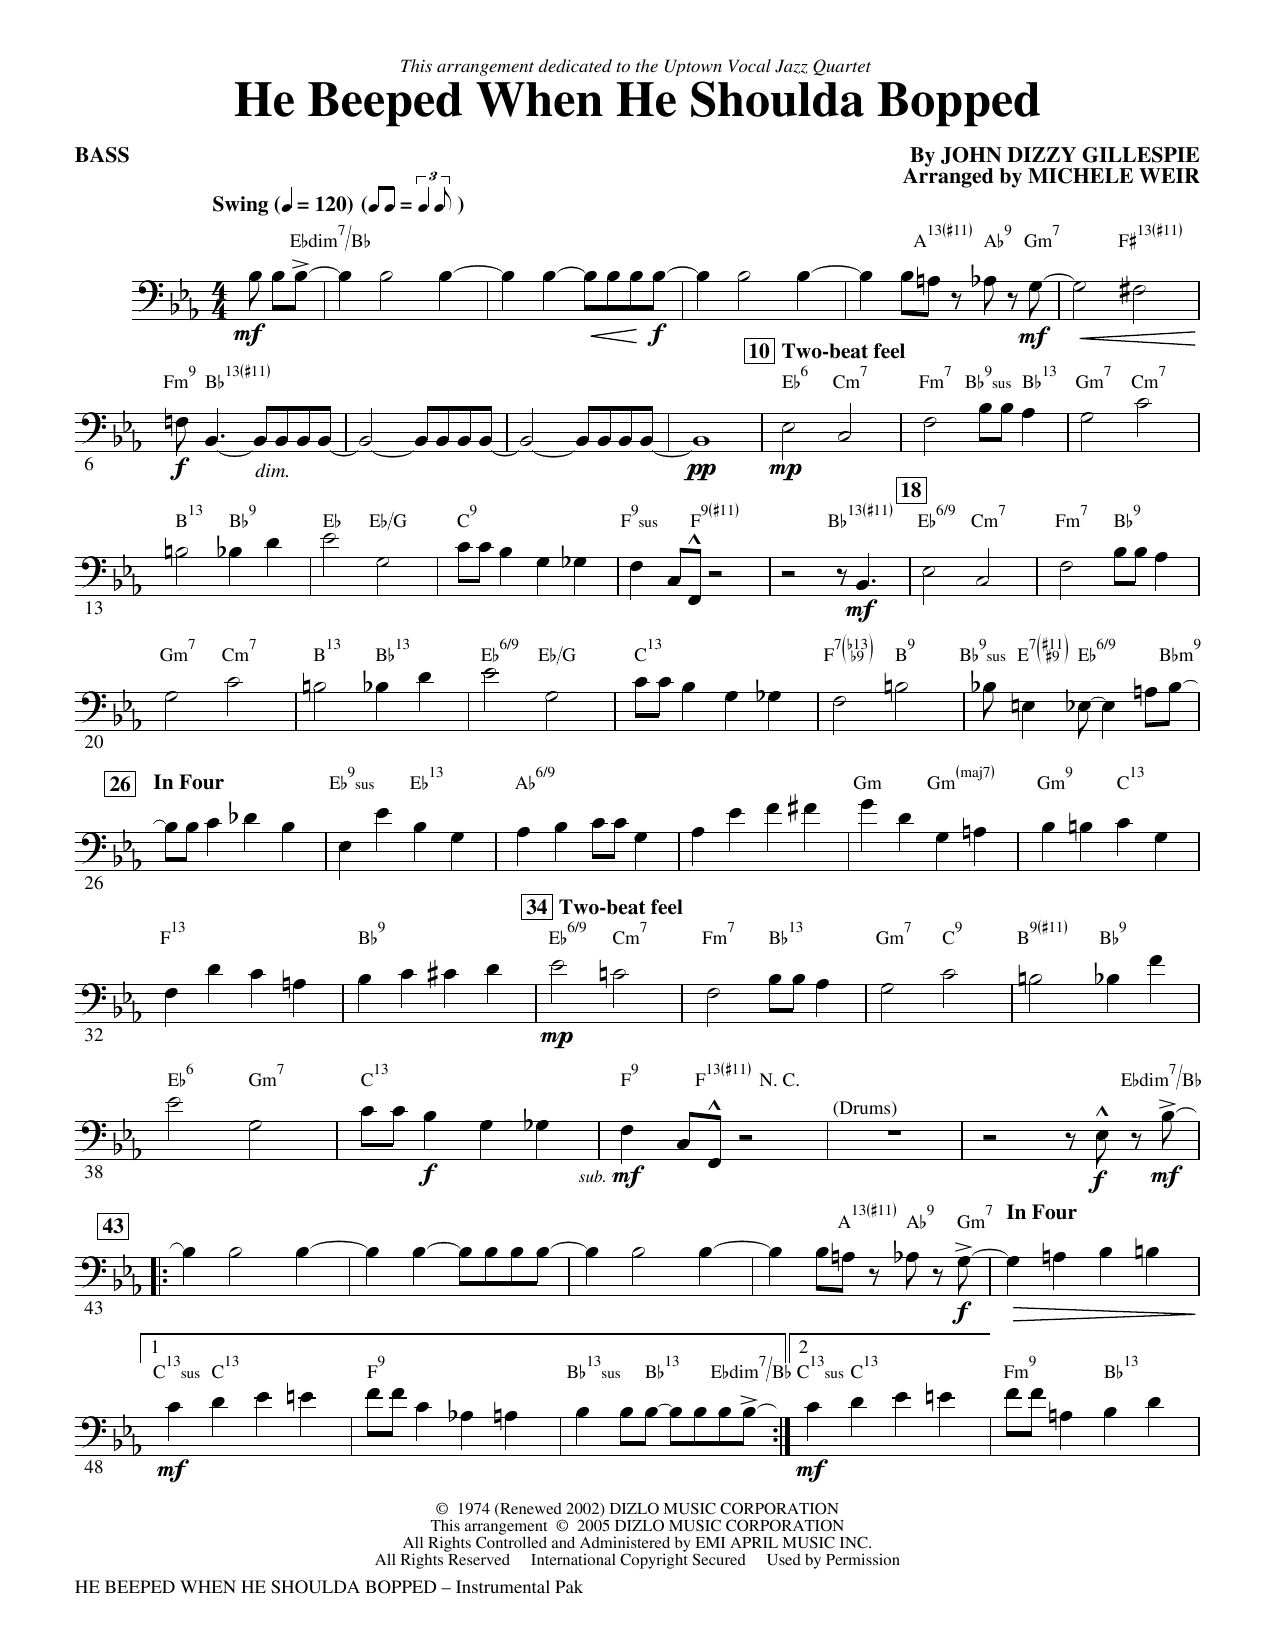 He Beeped When He Shoulda Bopped (arr. Michele Weir) - Bass Sheet Music